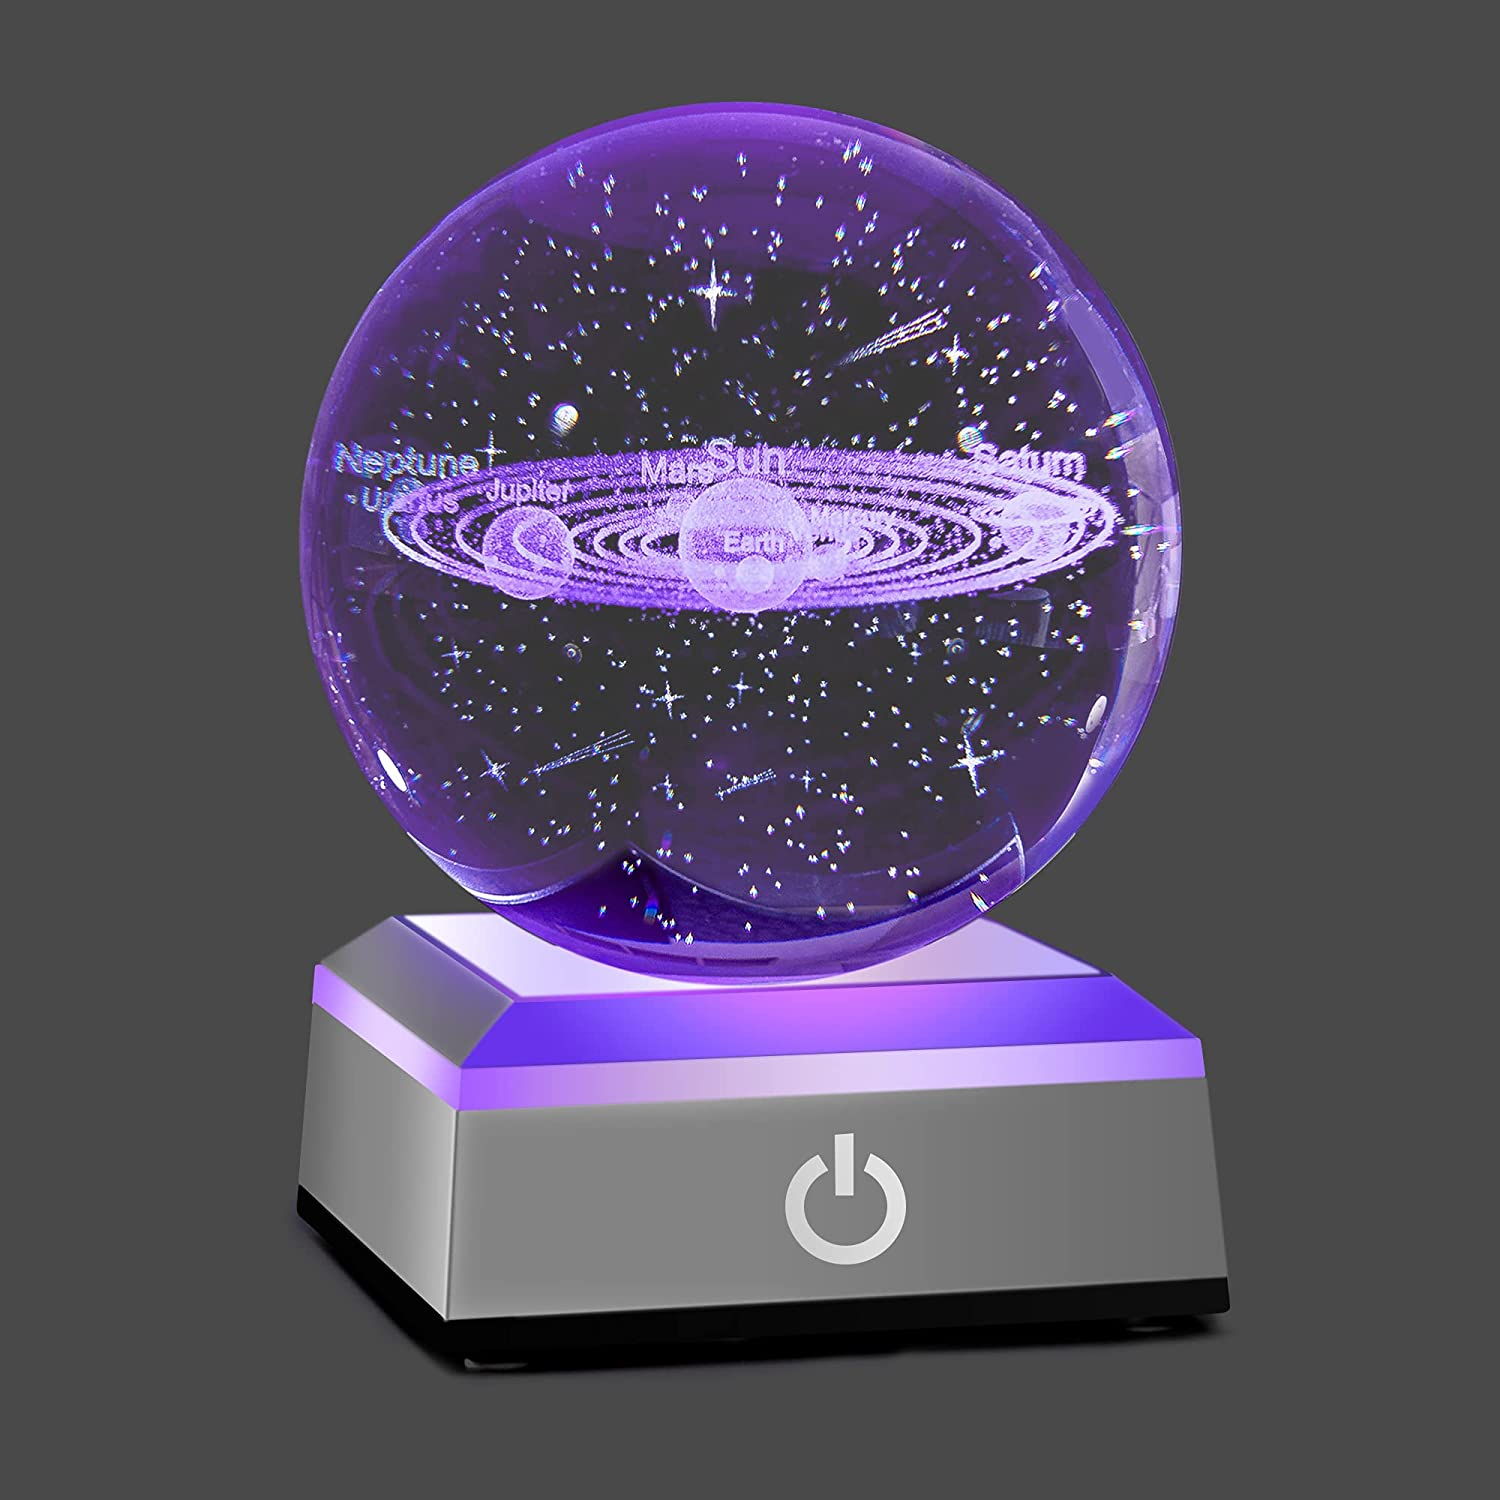 HOCHANCE 3D Solar System Crystal Ball with LED Colorful Lighting Touch Base,God Bless The World,Easter Religious Gifts for Girlfriend Woman Her Aunt Wife Mom Eldership